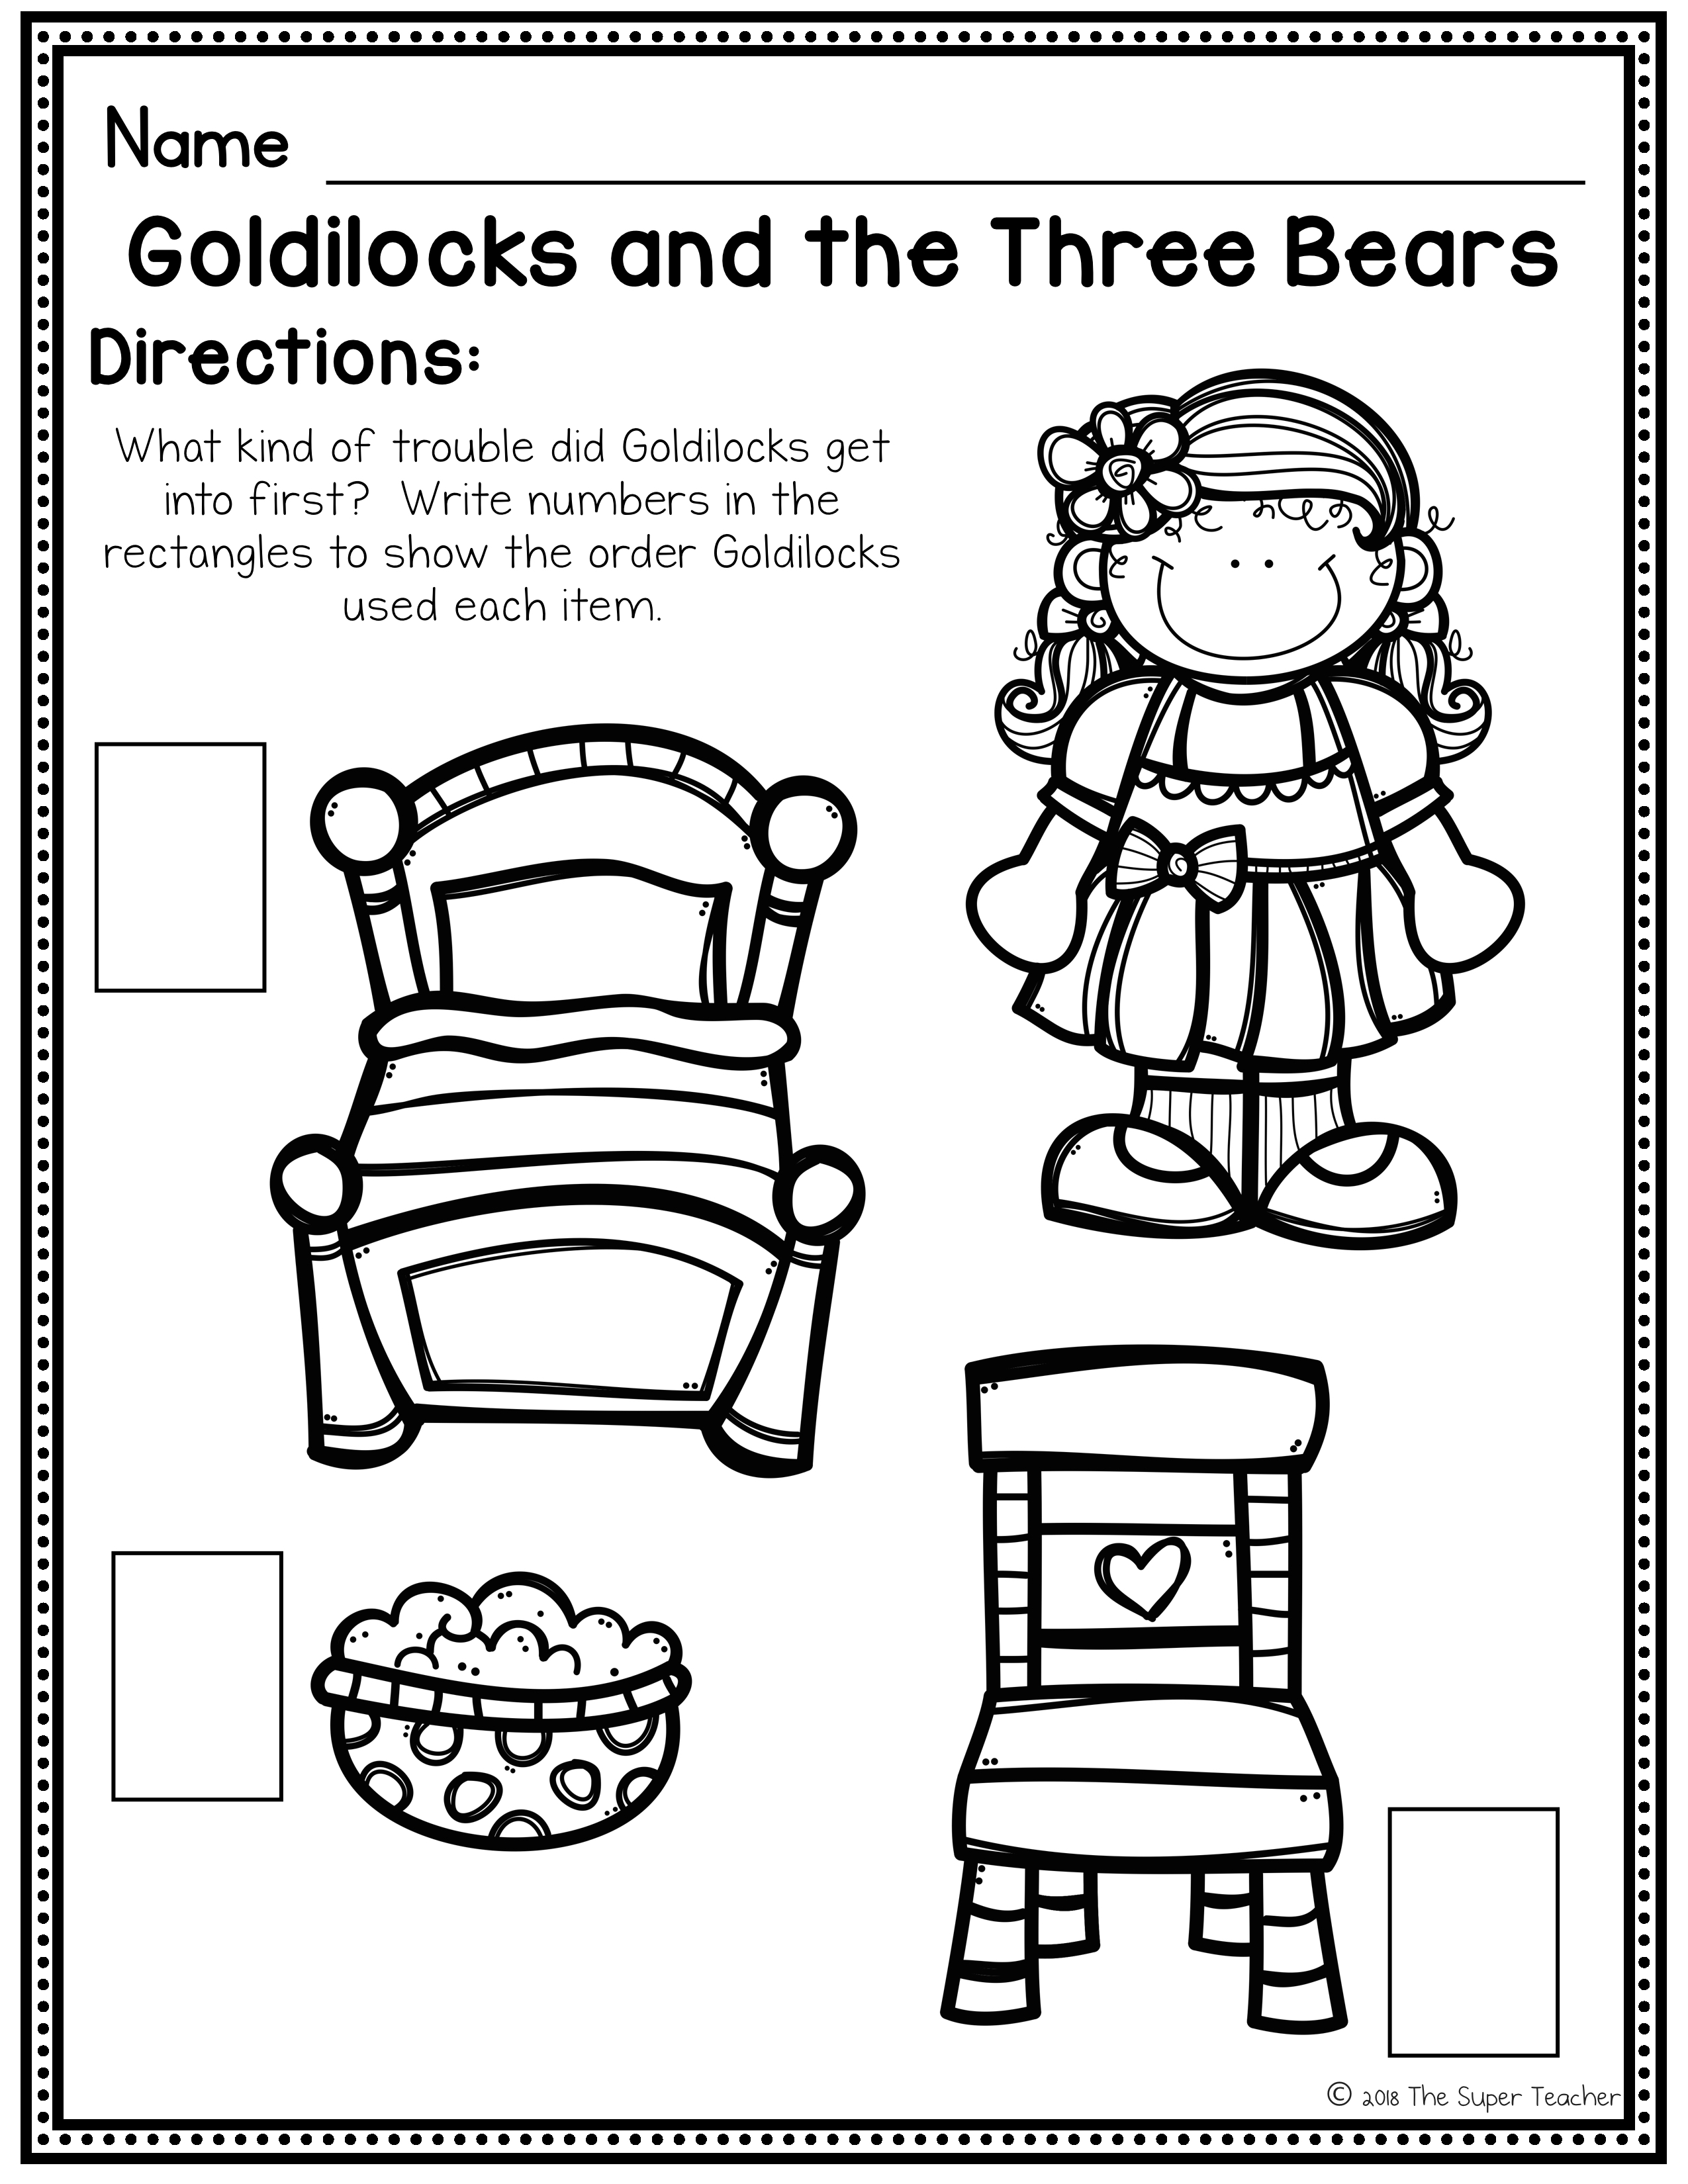 Goldilocks and the Three Bears Story Elements and Story